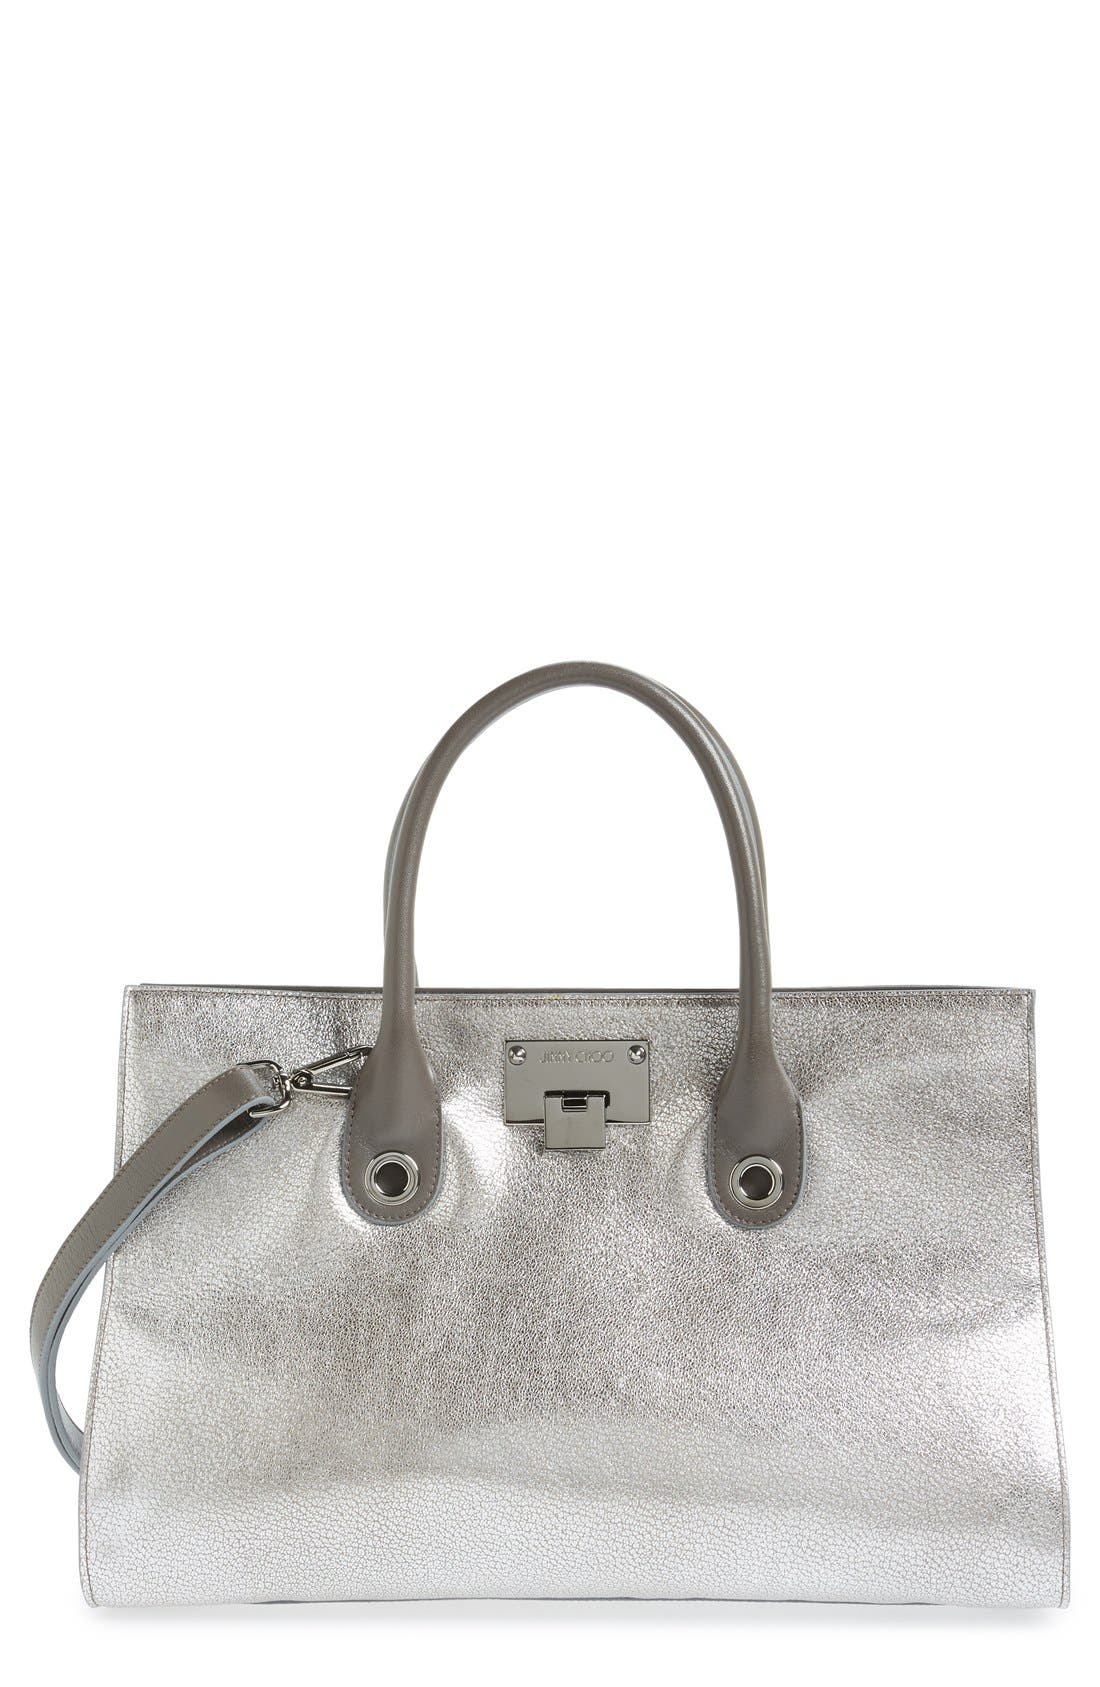 JIMMY CHOO 'Riley' Metallic Goatskin Leather Tote